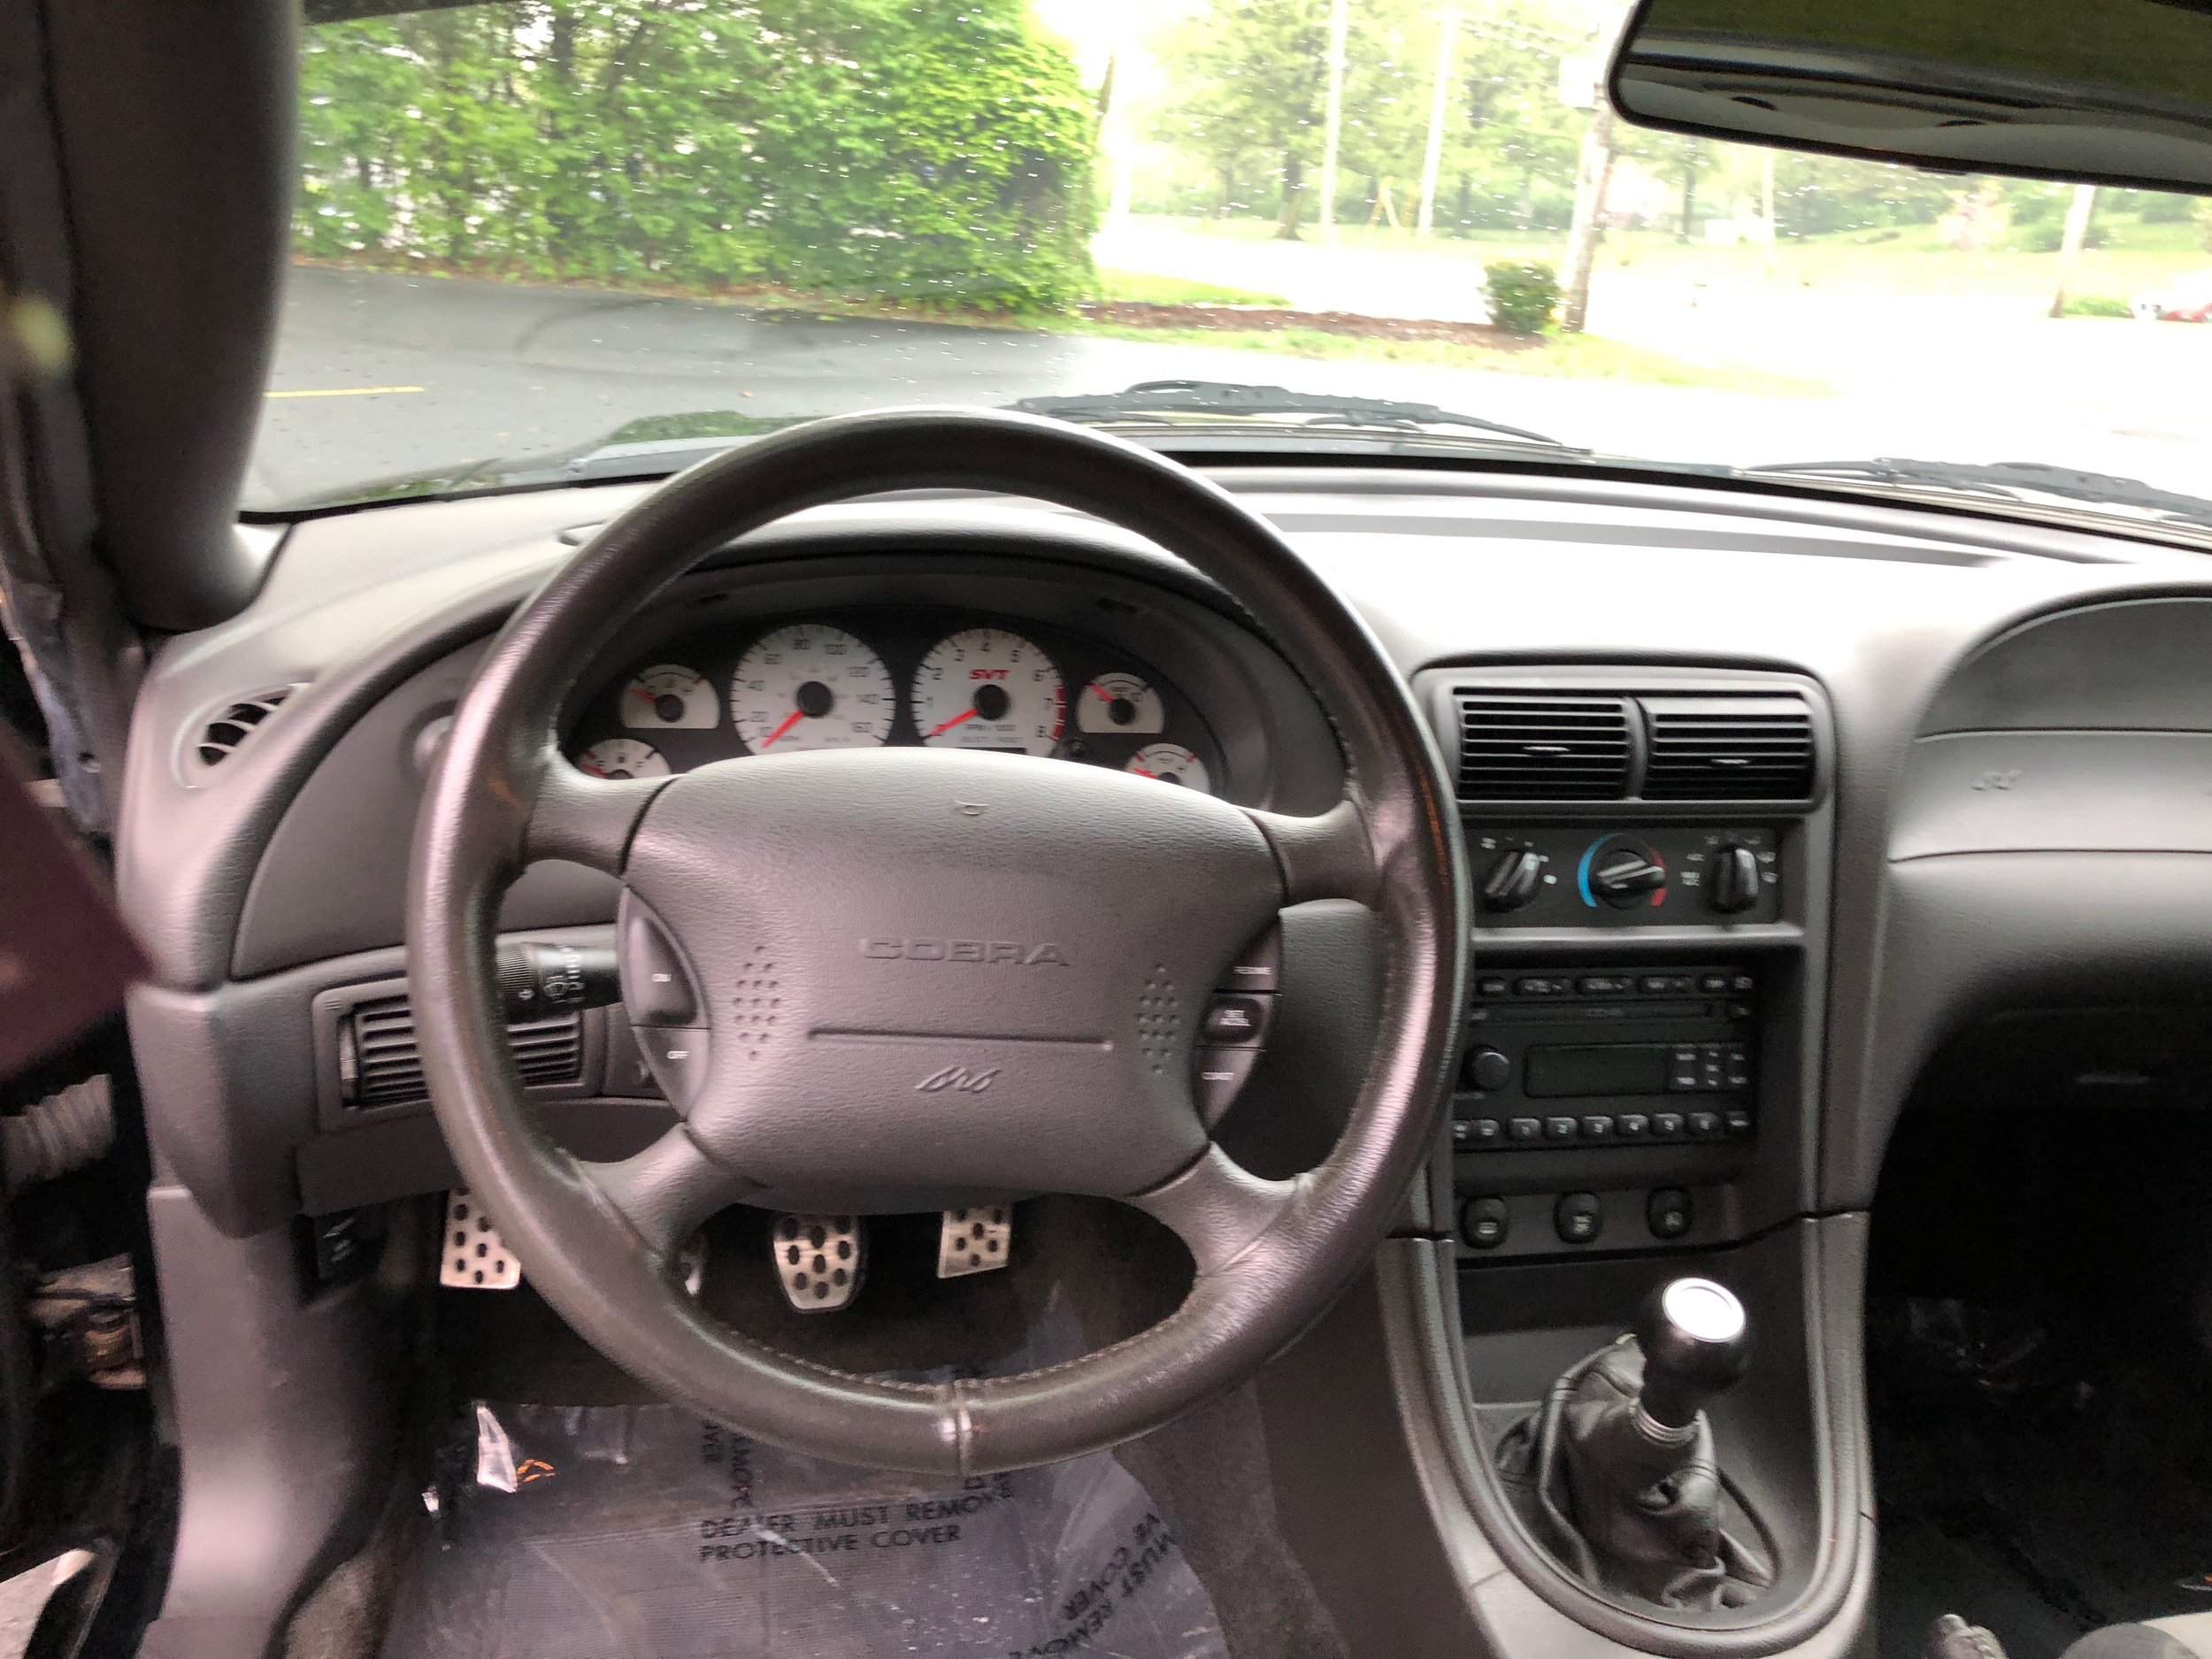 2003 Ford Mustang Svt Cobra Car Steering